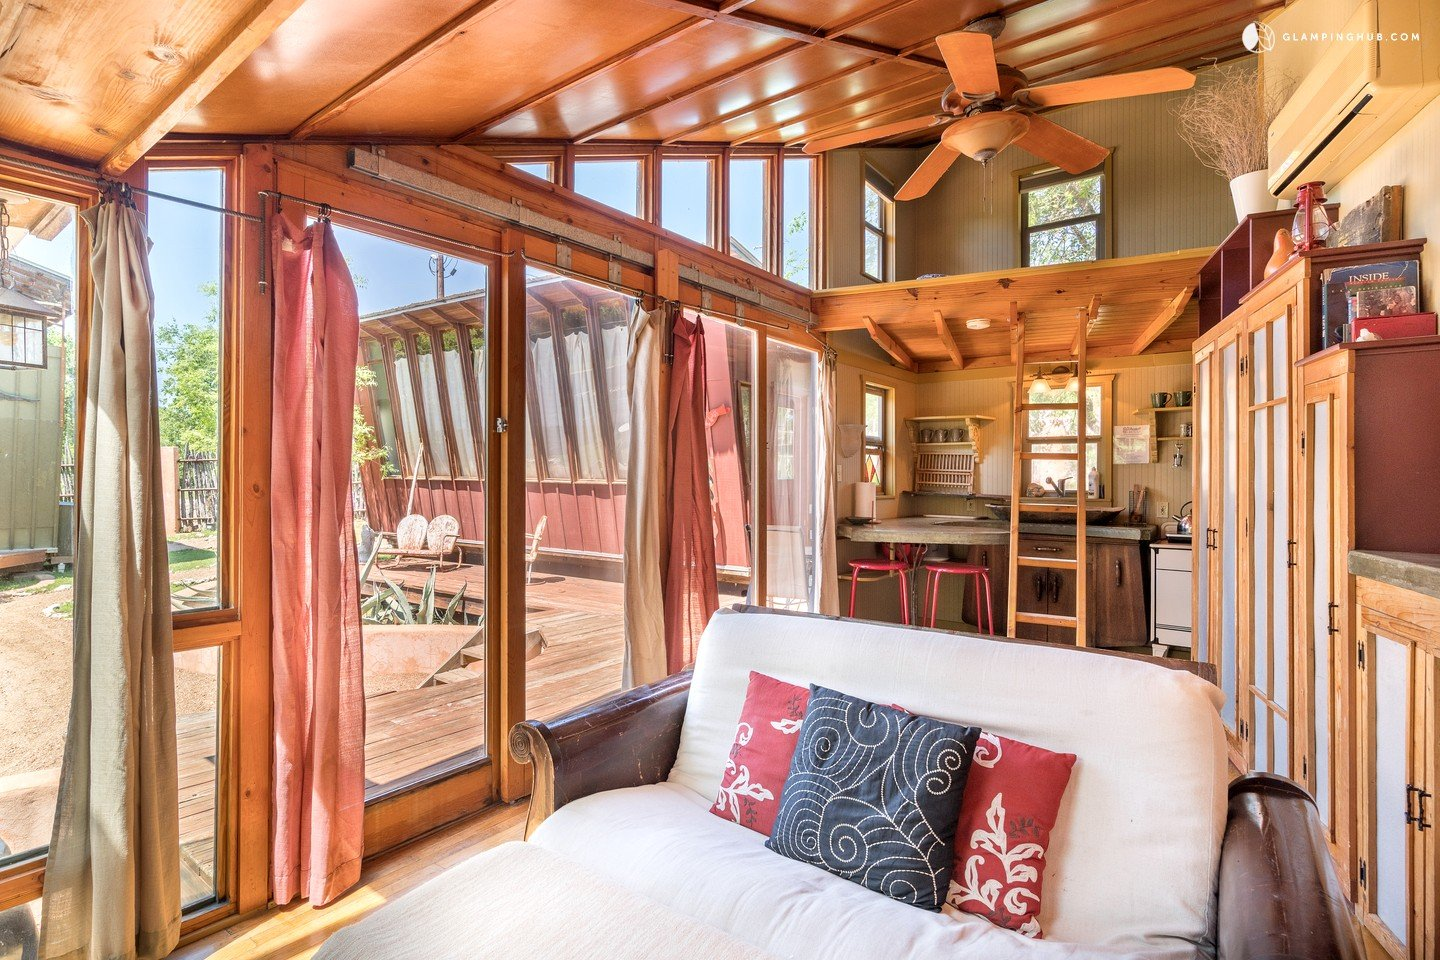 Eco cabins in texas hill country offer yoga retreats near for Texas hill country cabin